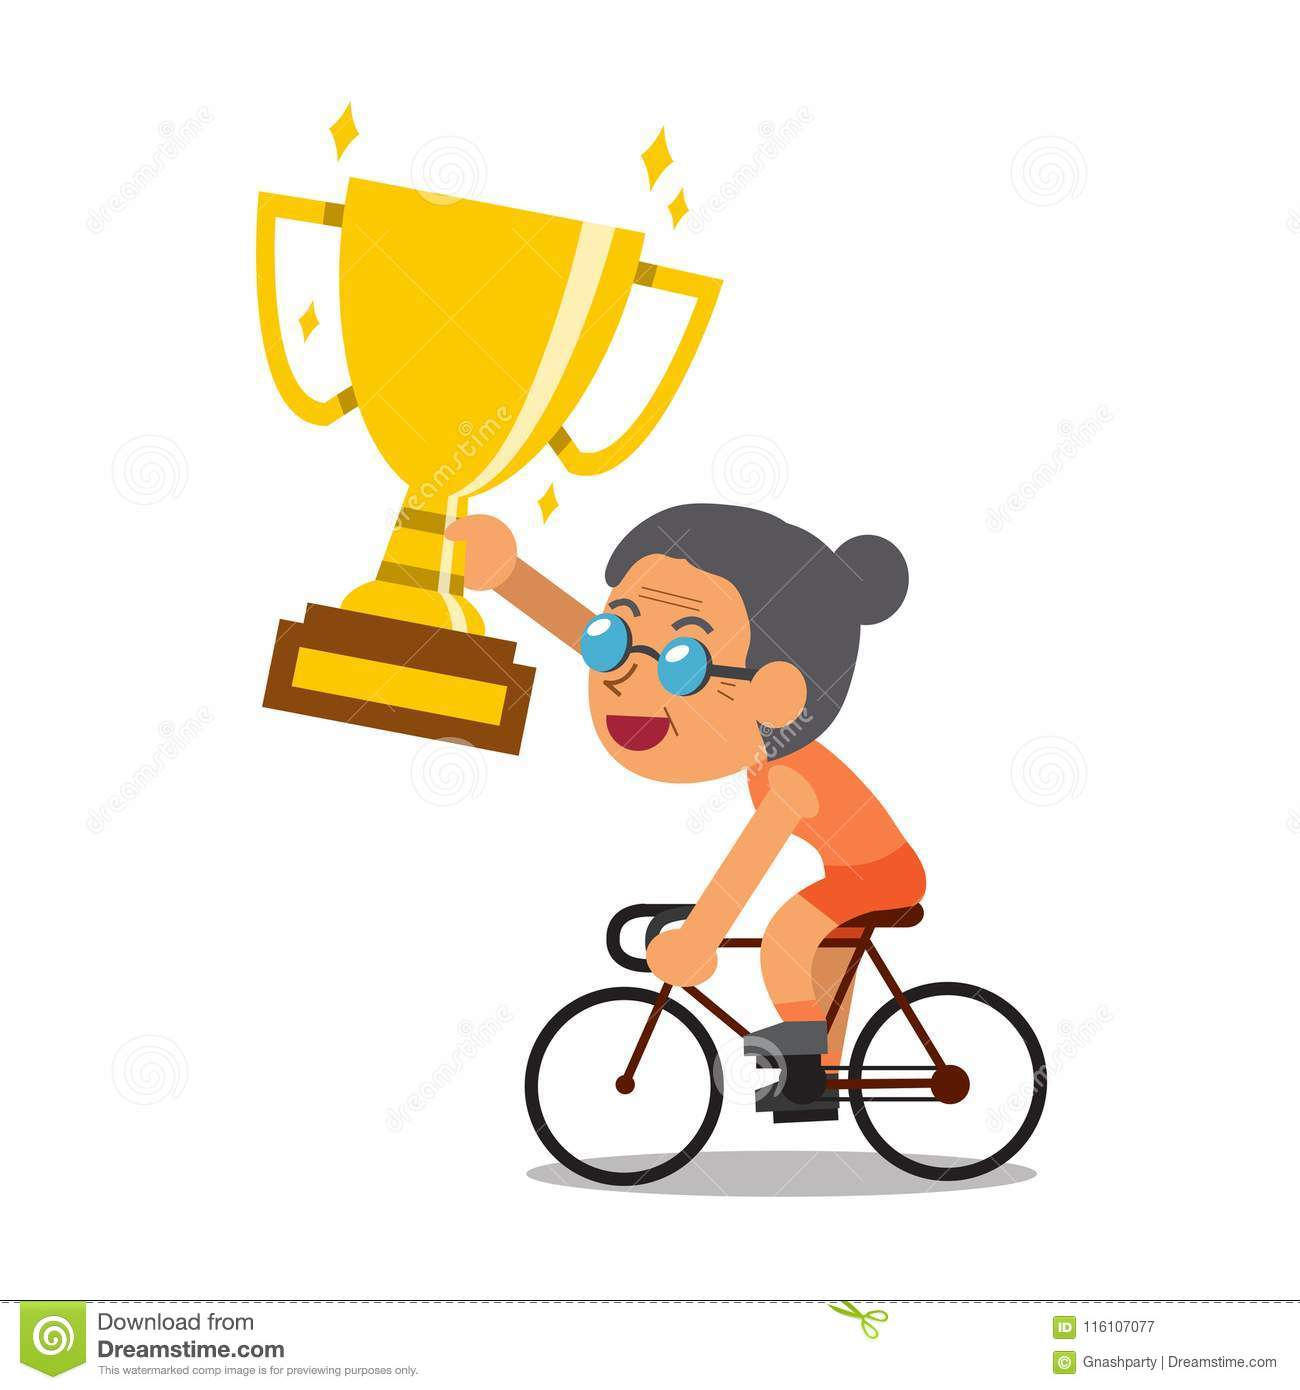 Download Vector Cartoon Sport Senior Woman Riding Bike And Holding Big Gold Trophy Cup Award Stock